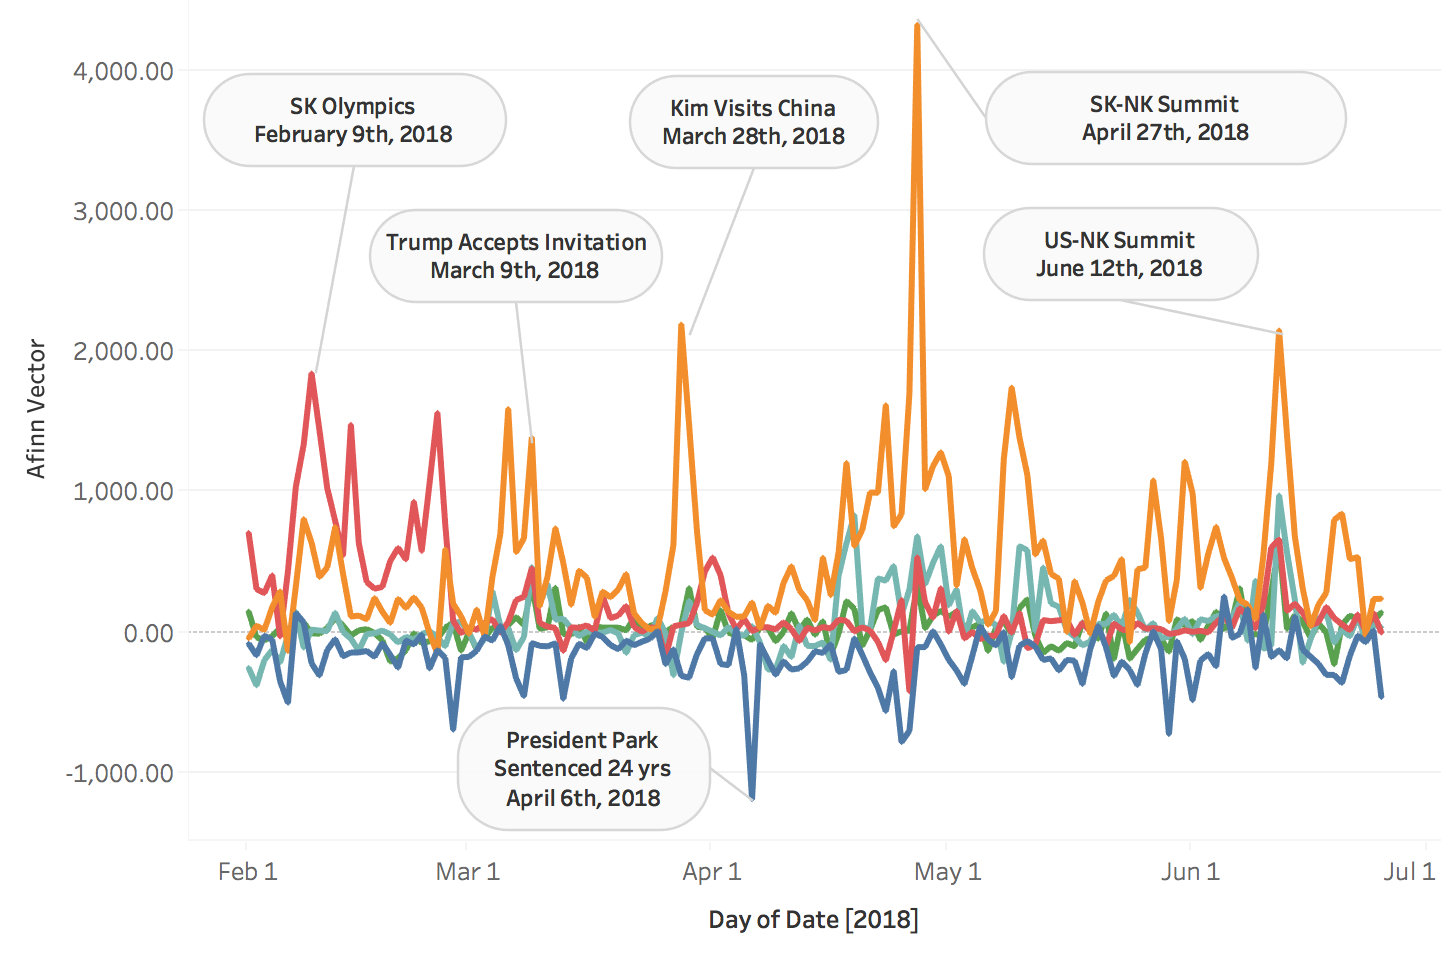 Figure 3. Time Series Analysis: Topic Model Results and Afinn Sentiment Score